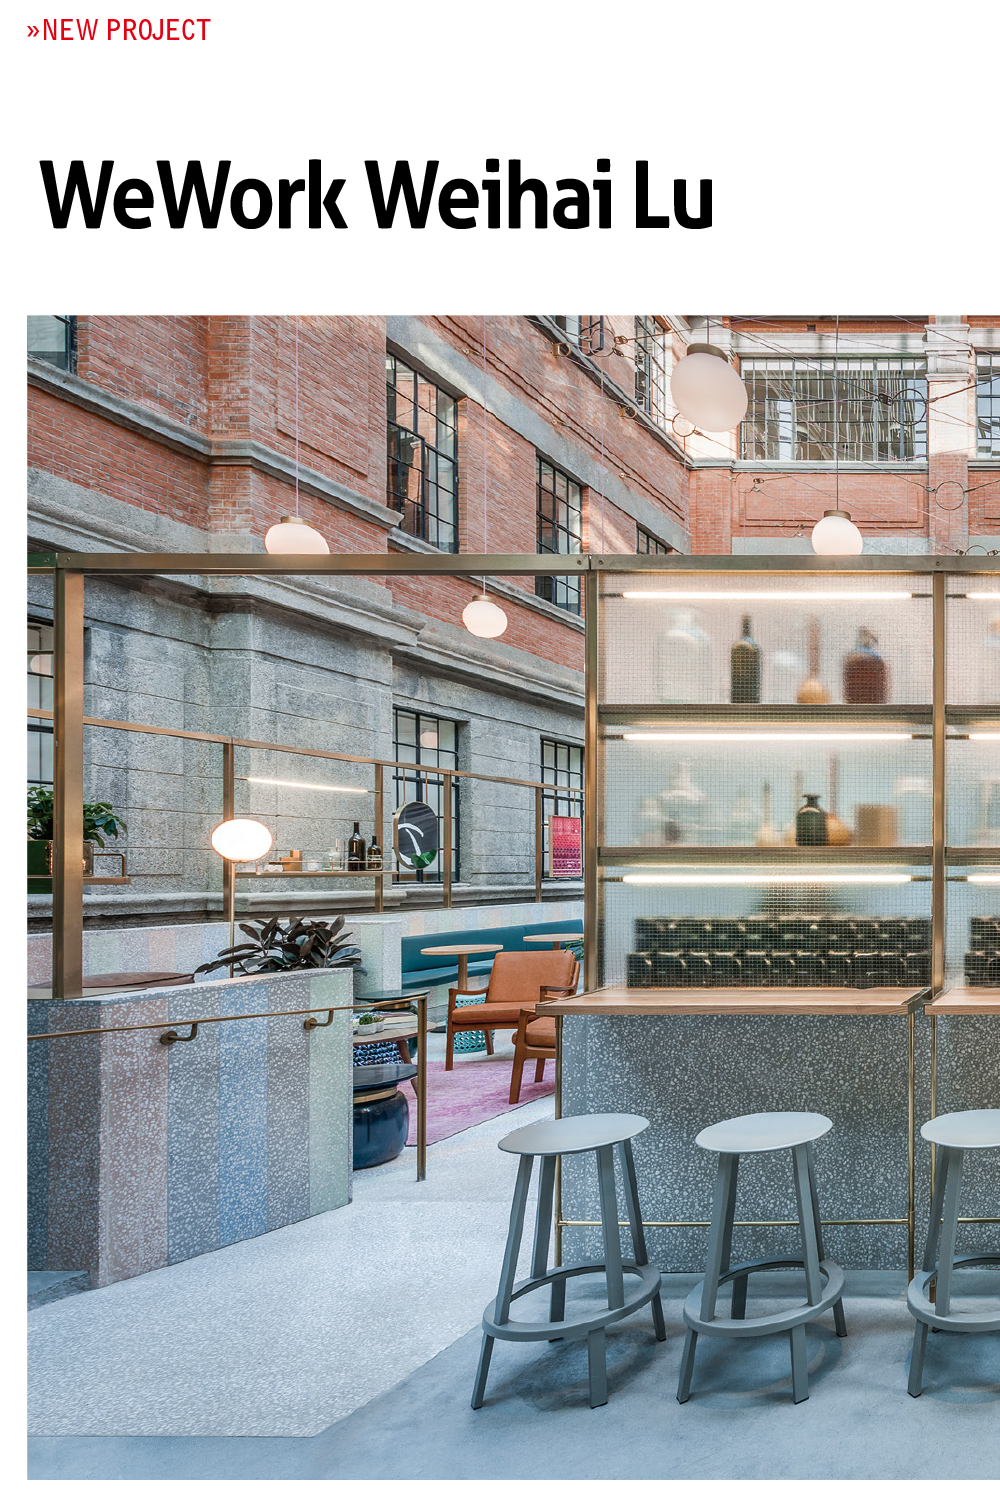 Interior News, WeWork Weihai Lu, May 2017